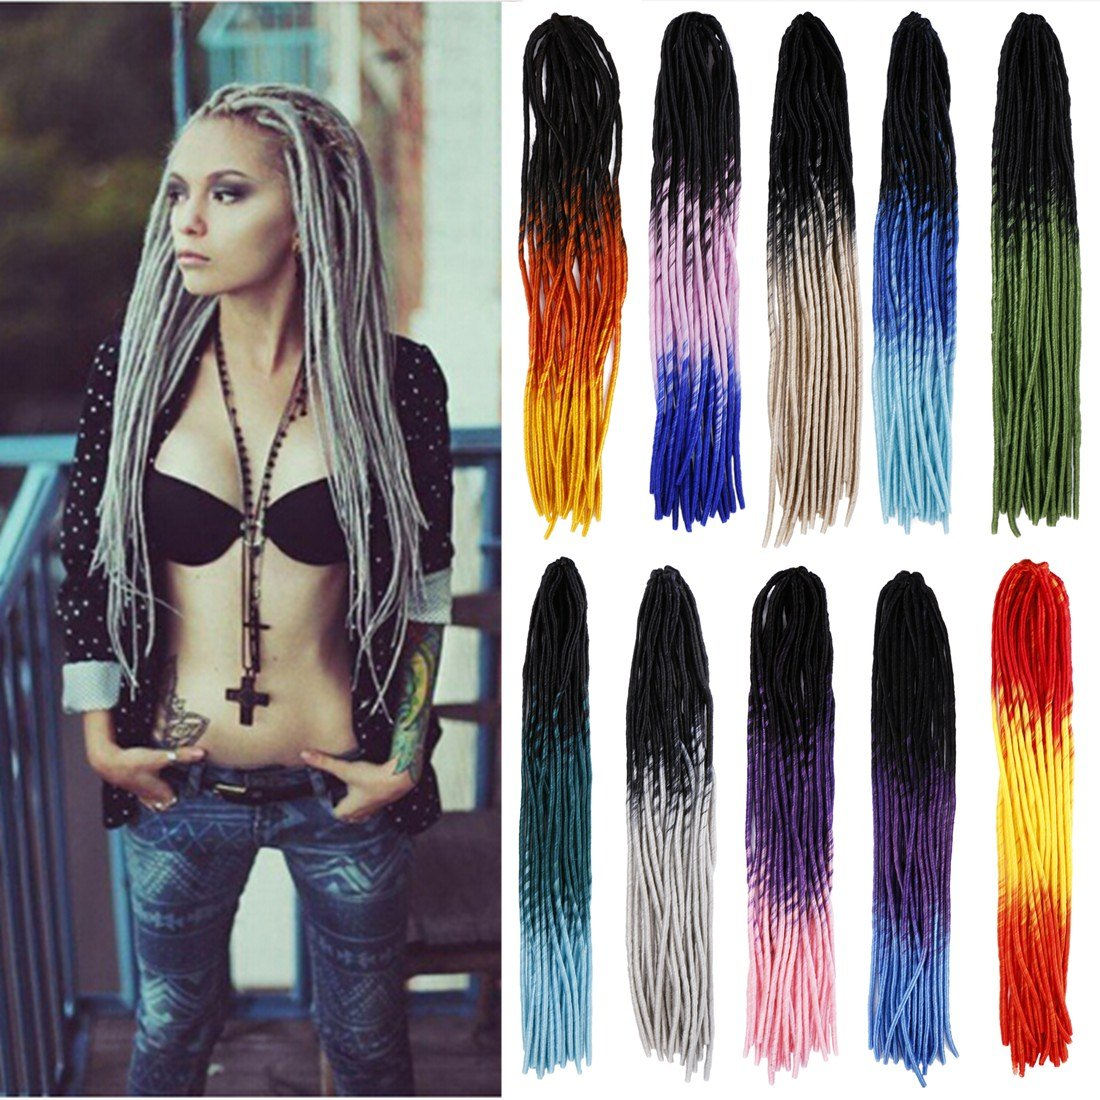 Amazon 24 Handmade Dreads Ombre Black To Grey Braiding